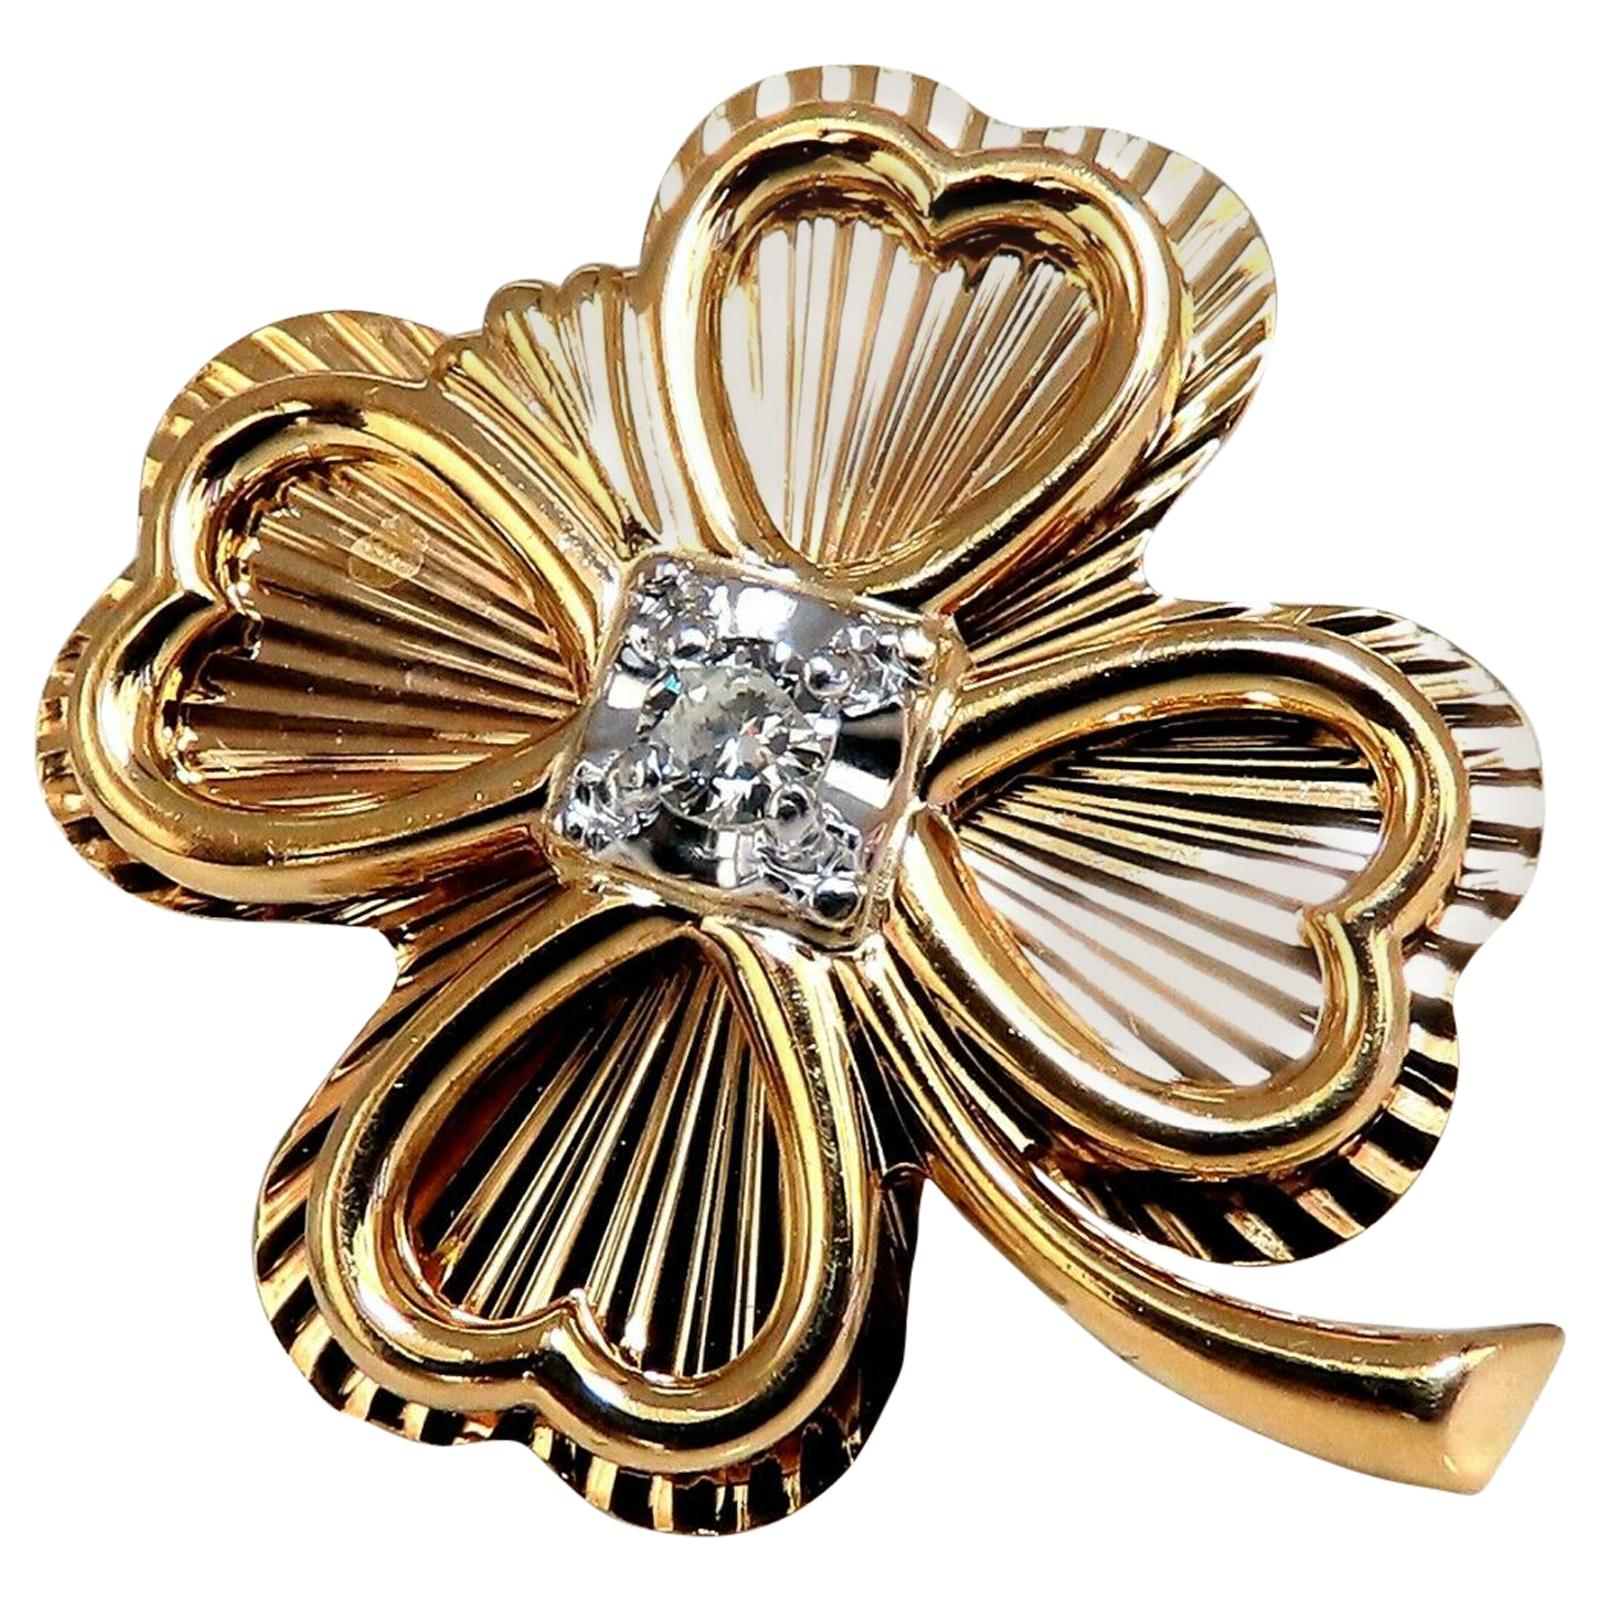 54d3eadb7 Antique 14k Gold Brooches - 1,037 For Sale at 1stdibs